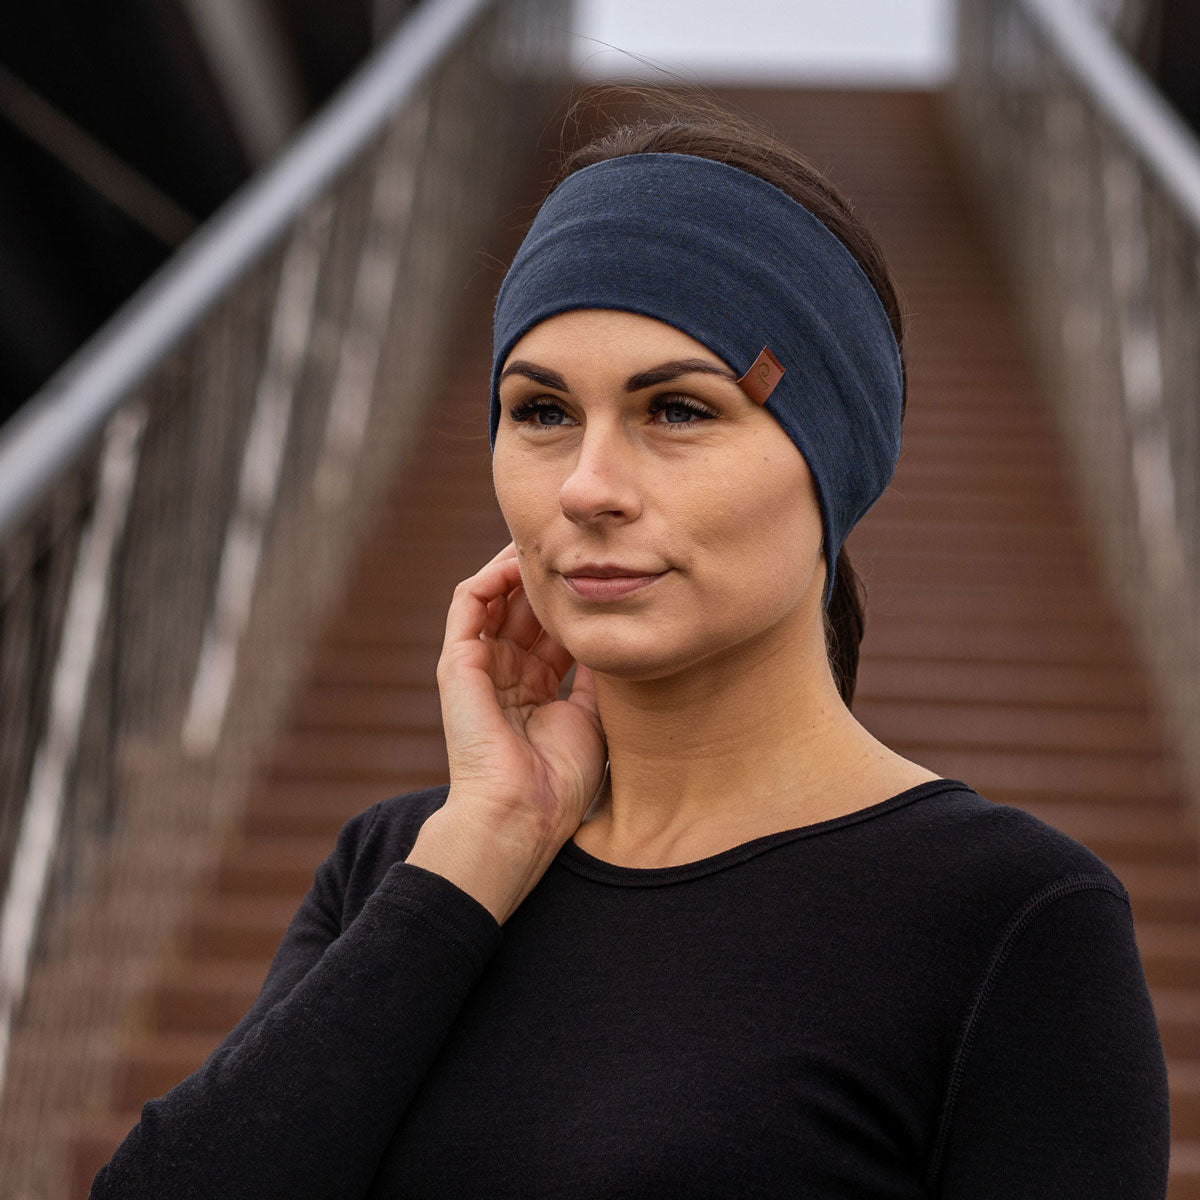 menique Women's Merino Wool Headband Dark blue